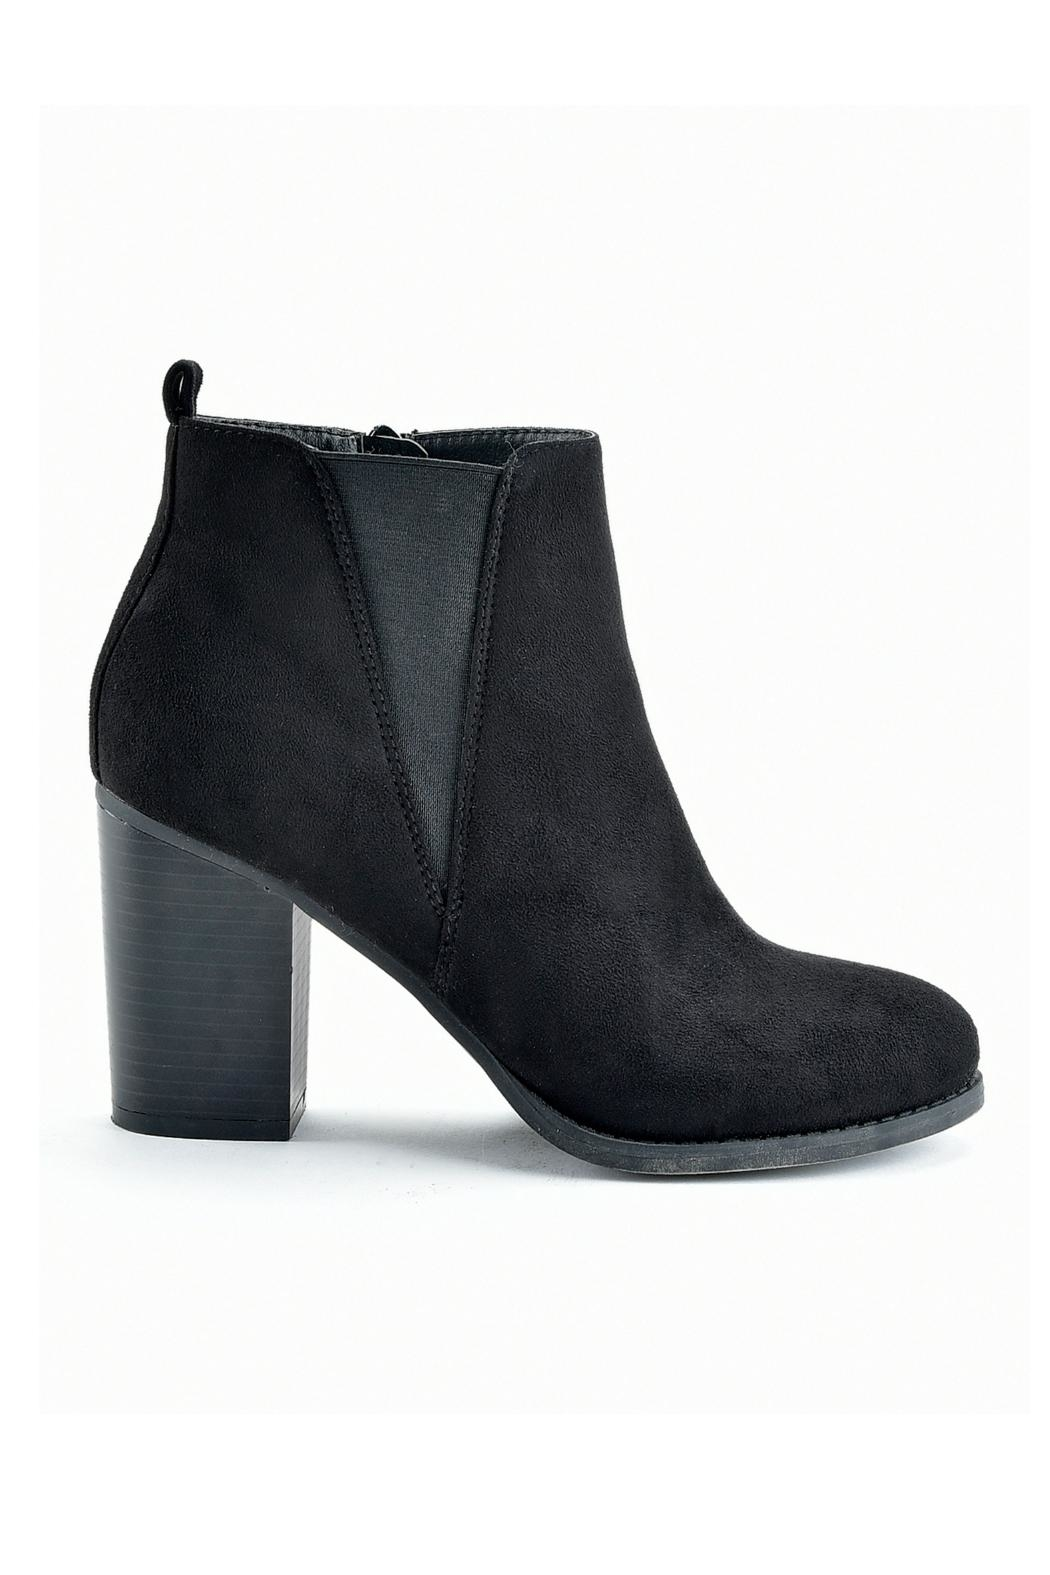 Charlie Paige Zippered Ankle Bootie - Front Cropped Image